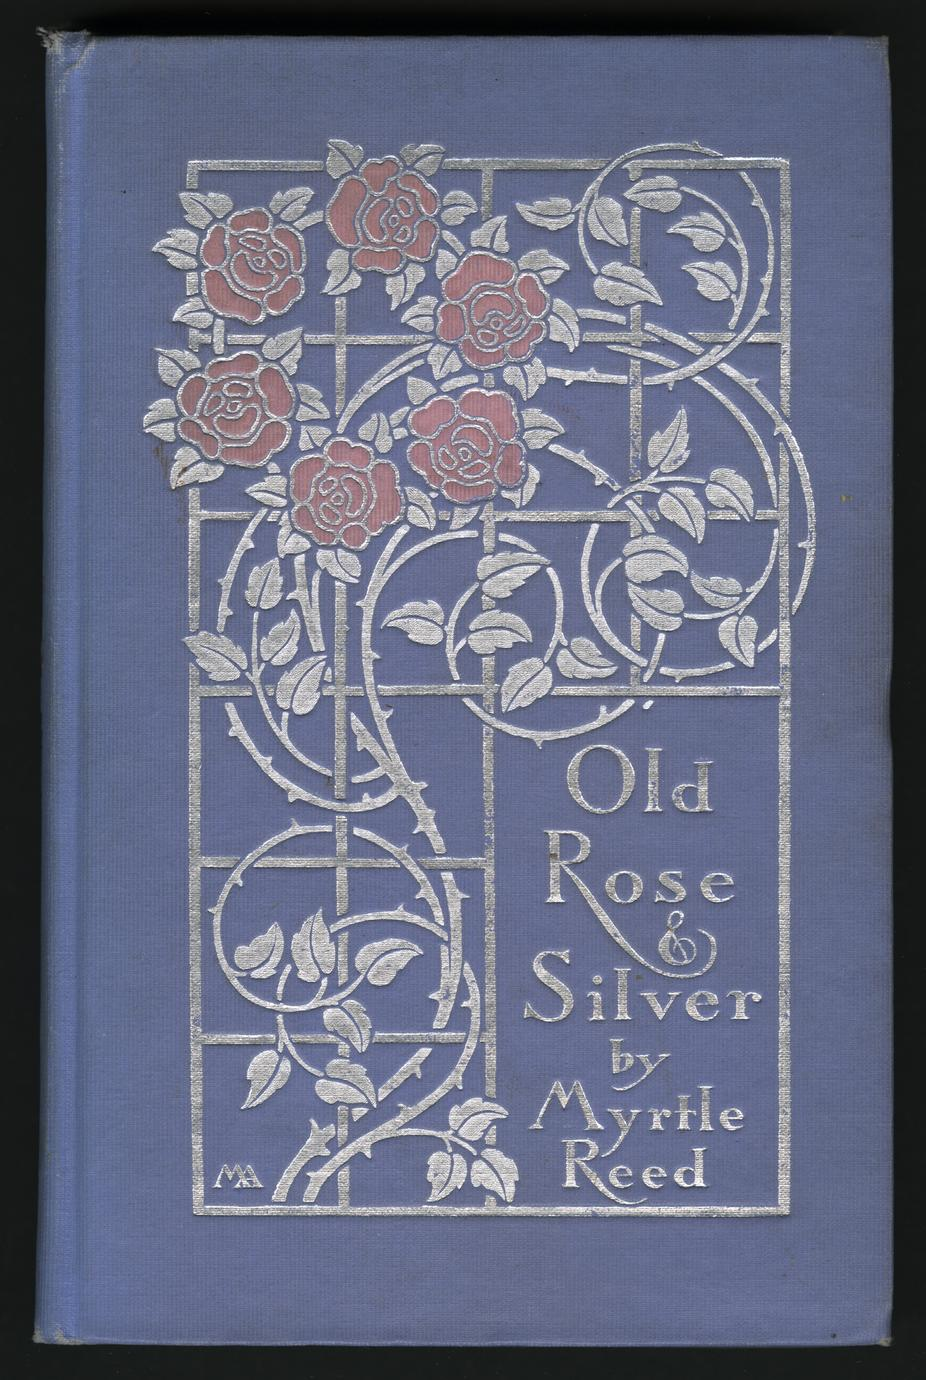 Old rose and silver (1 of 3)